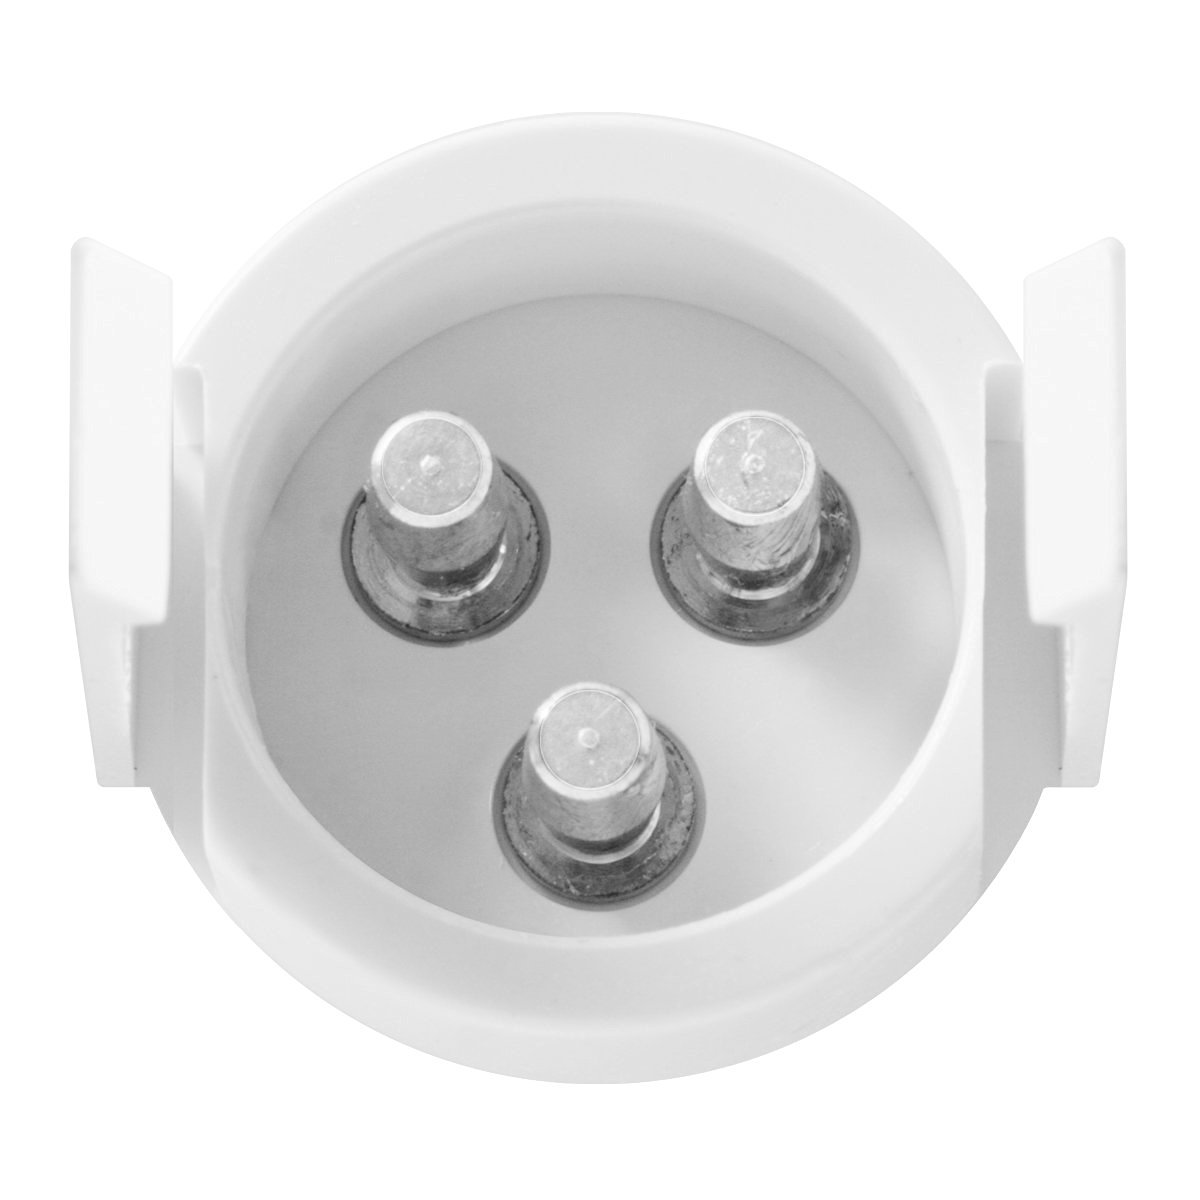 Back of the Light View, 3-Prong Round Plug